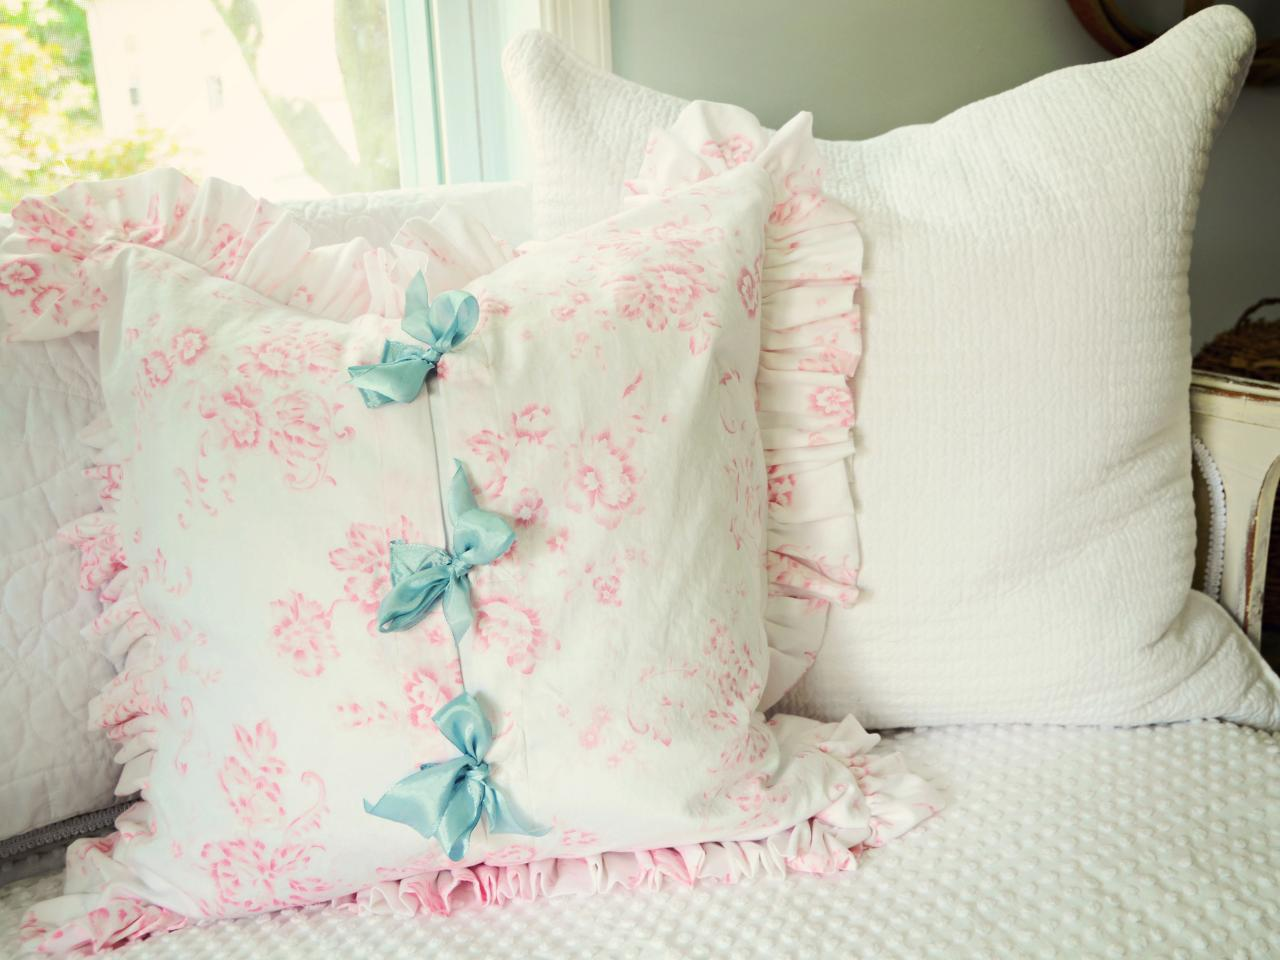 How To Make A Throw Pillow With Ruffle : Simple Shabby Chic Ruffled Pillow HGTV